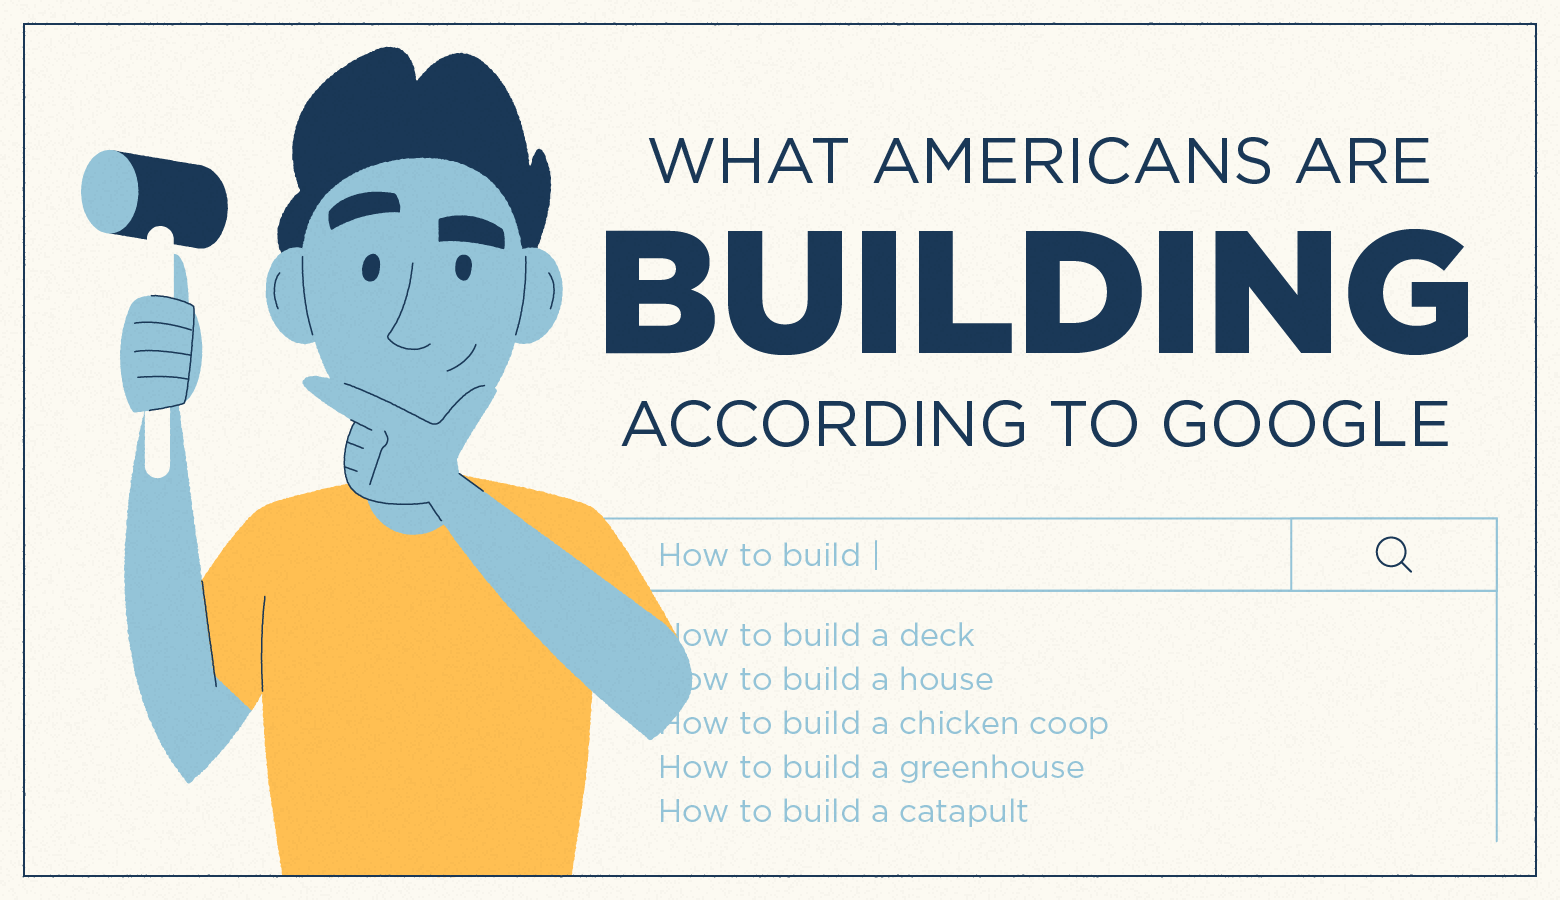 What Americans Are Building According to Google